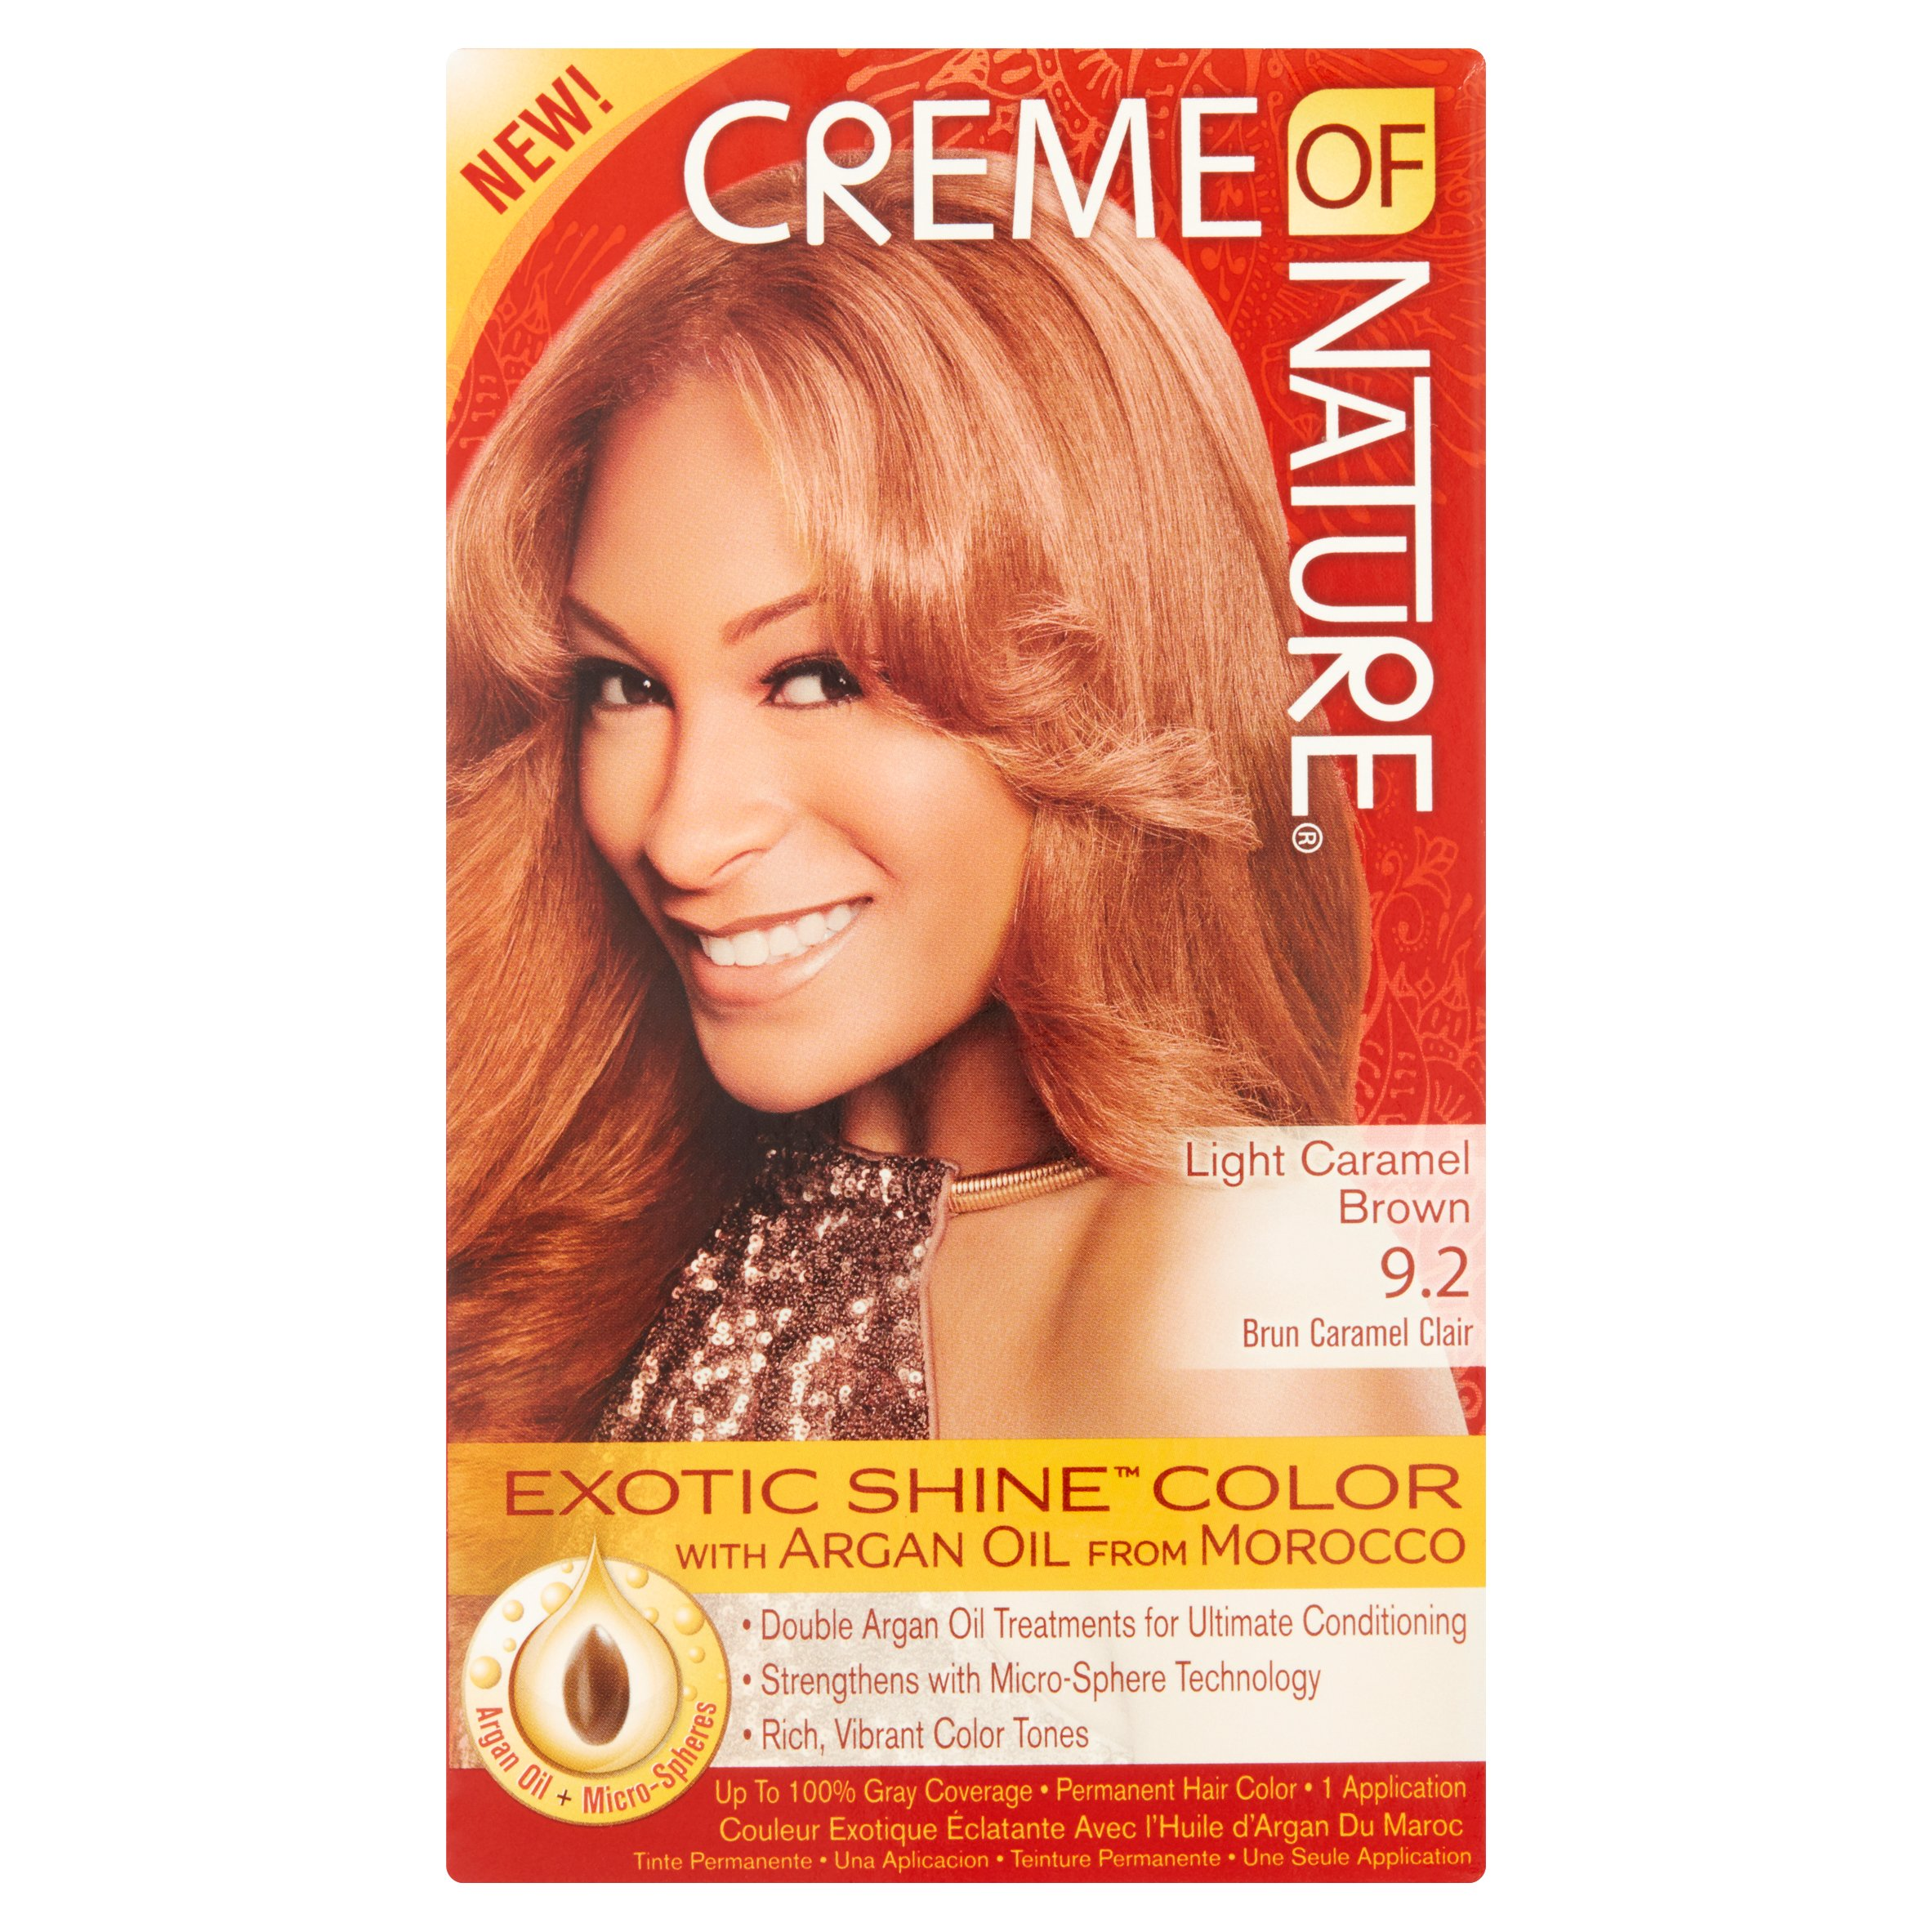 Creme Of Nature Light Caramel Brown 92 Brun Caramel Clair Permanent